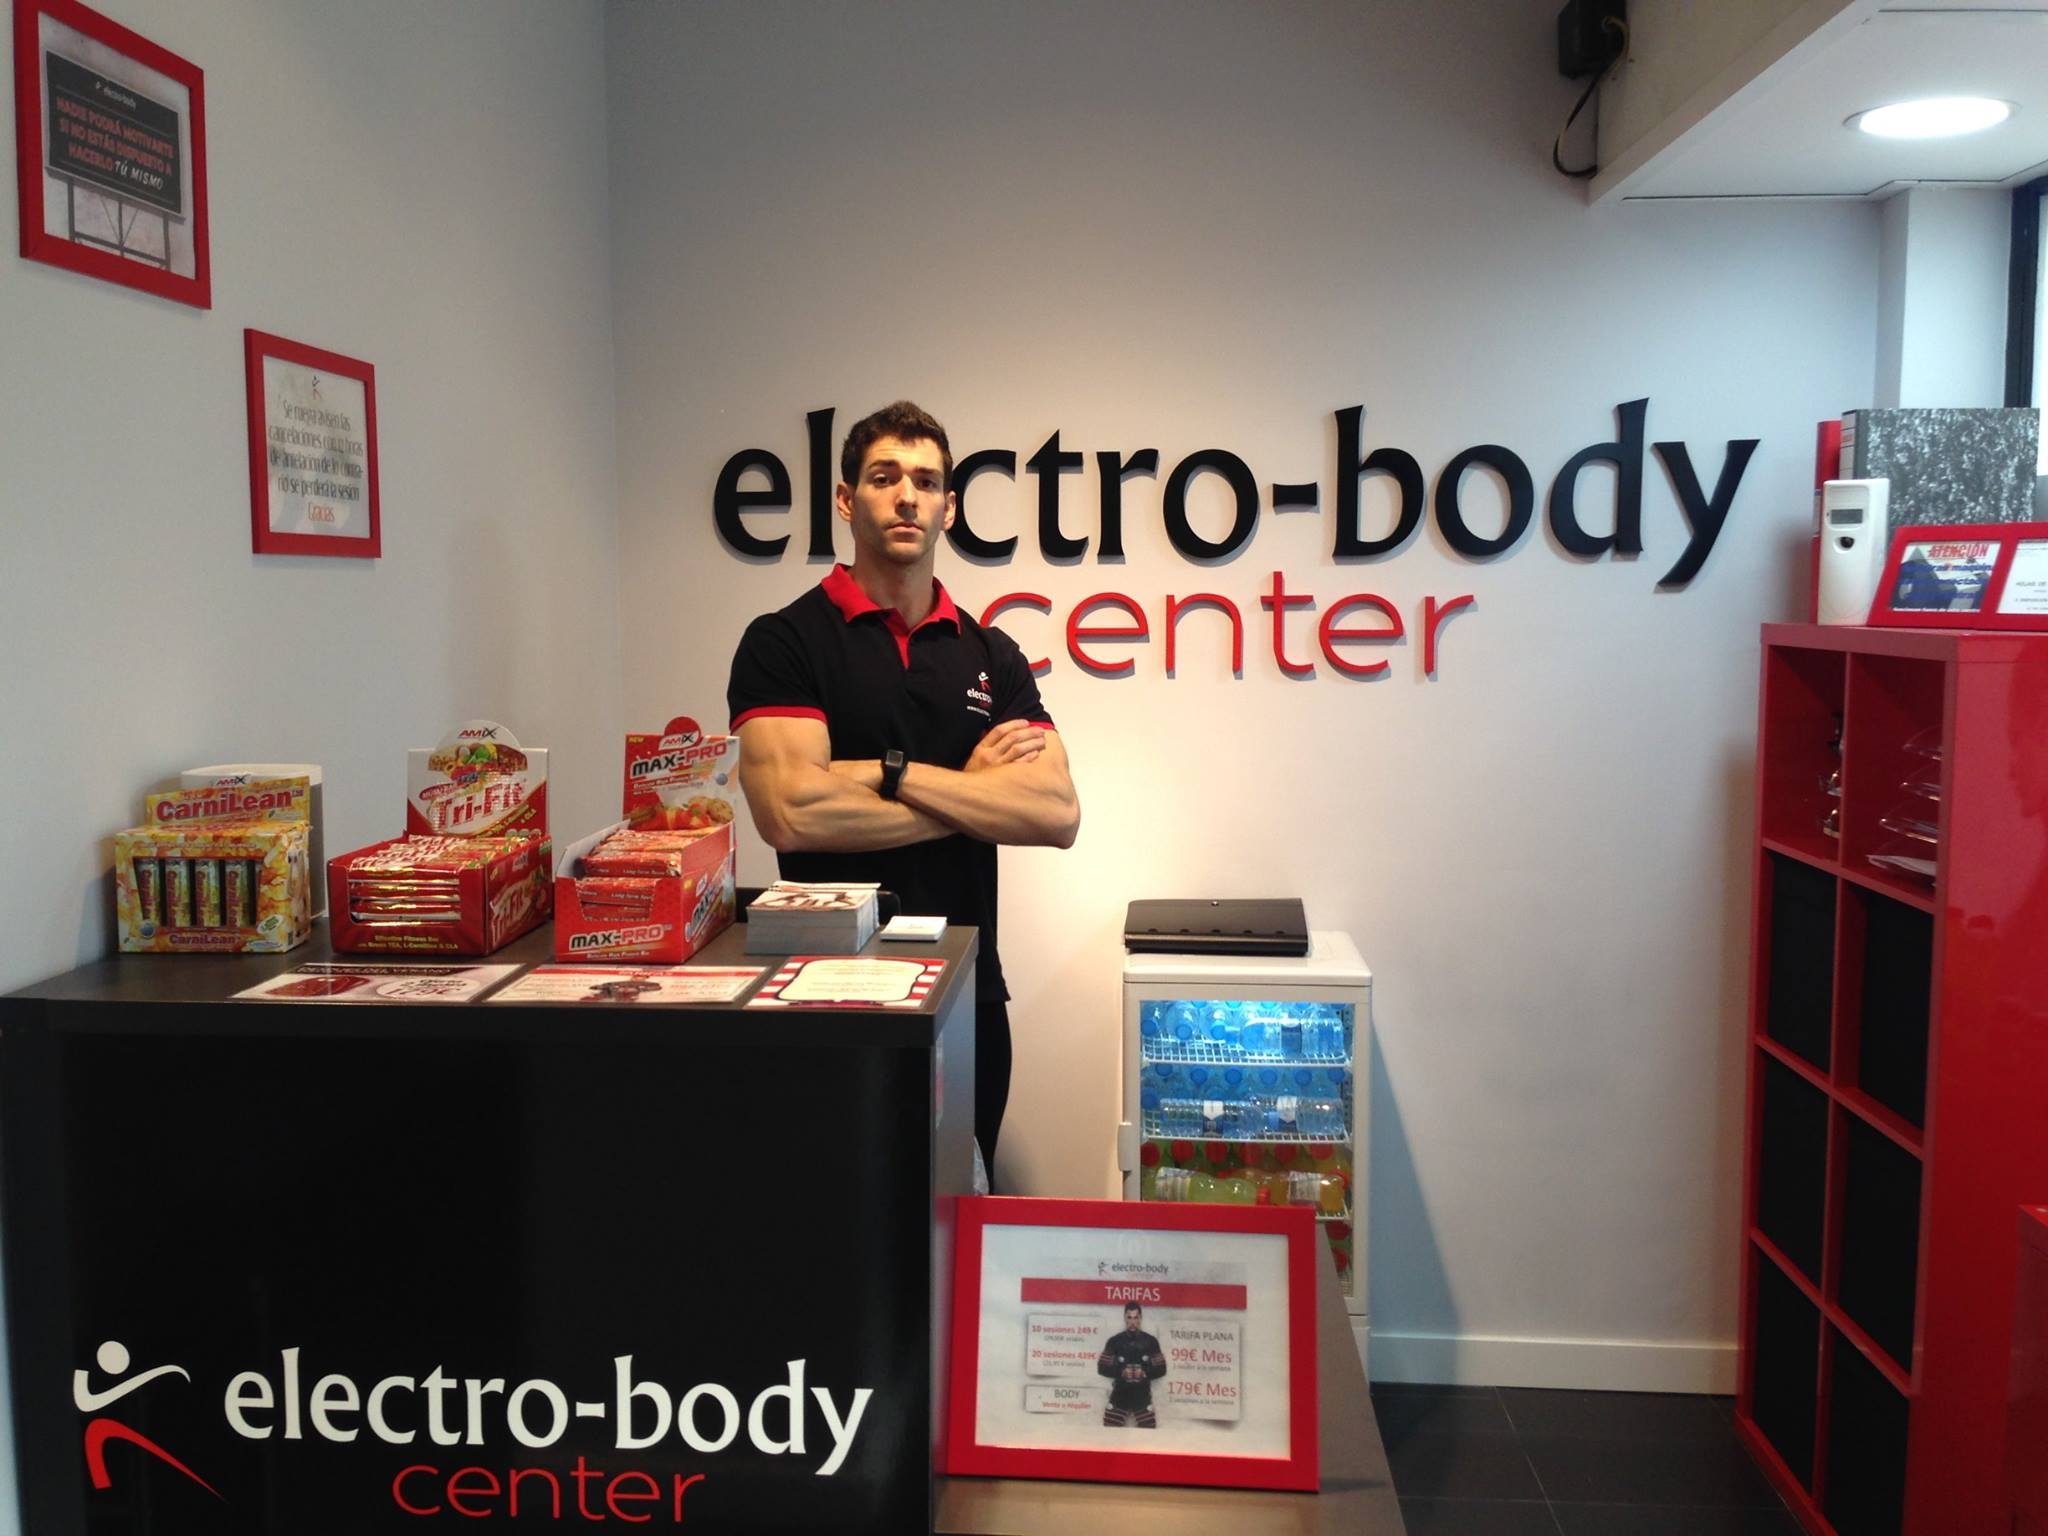 Electro-body center Villalba